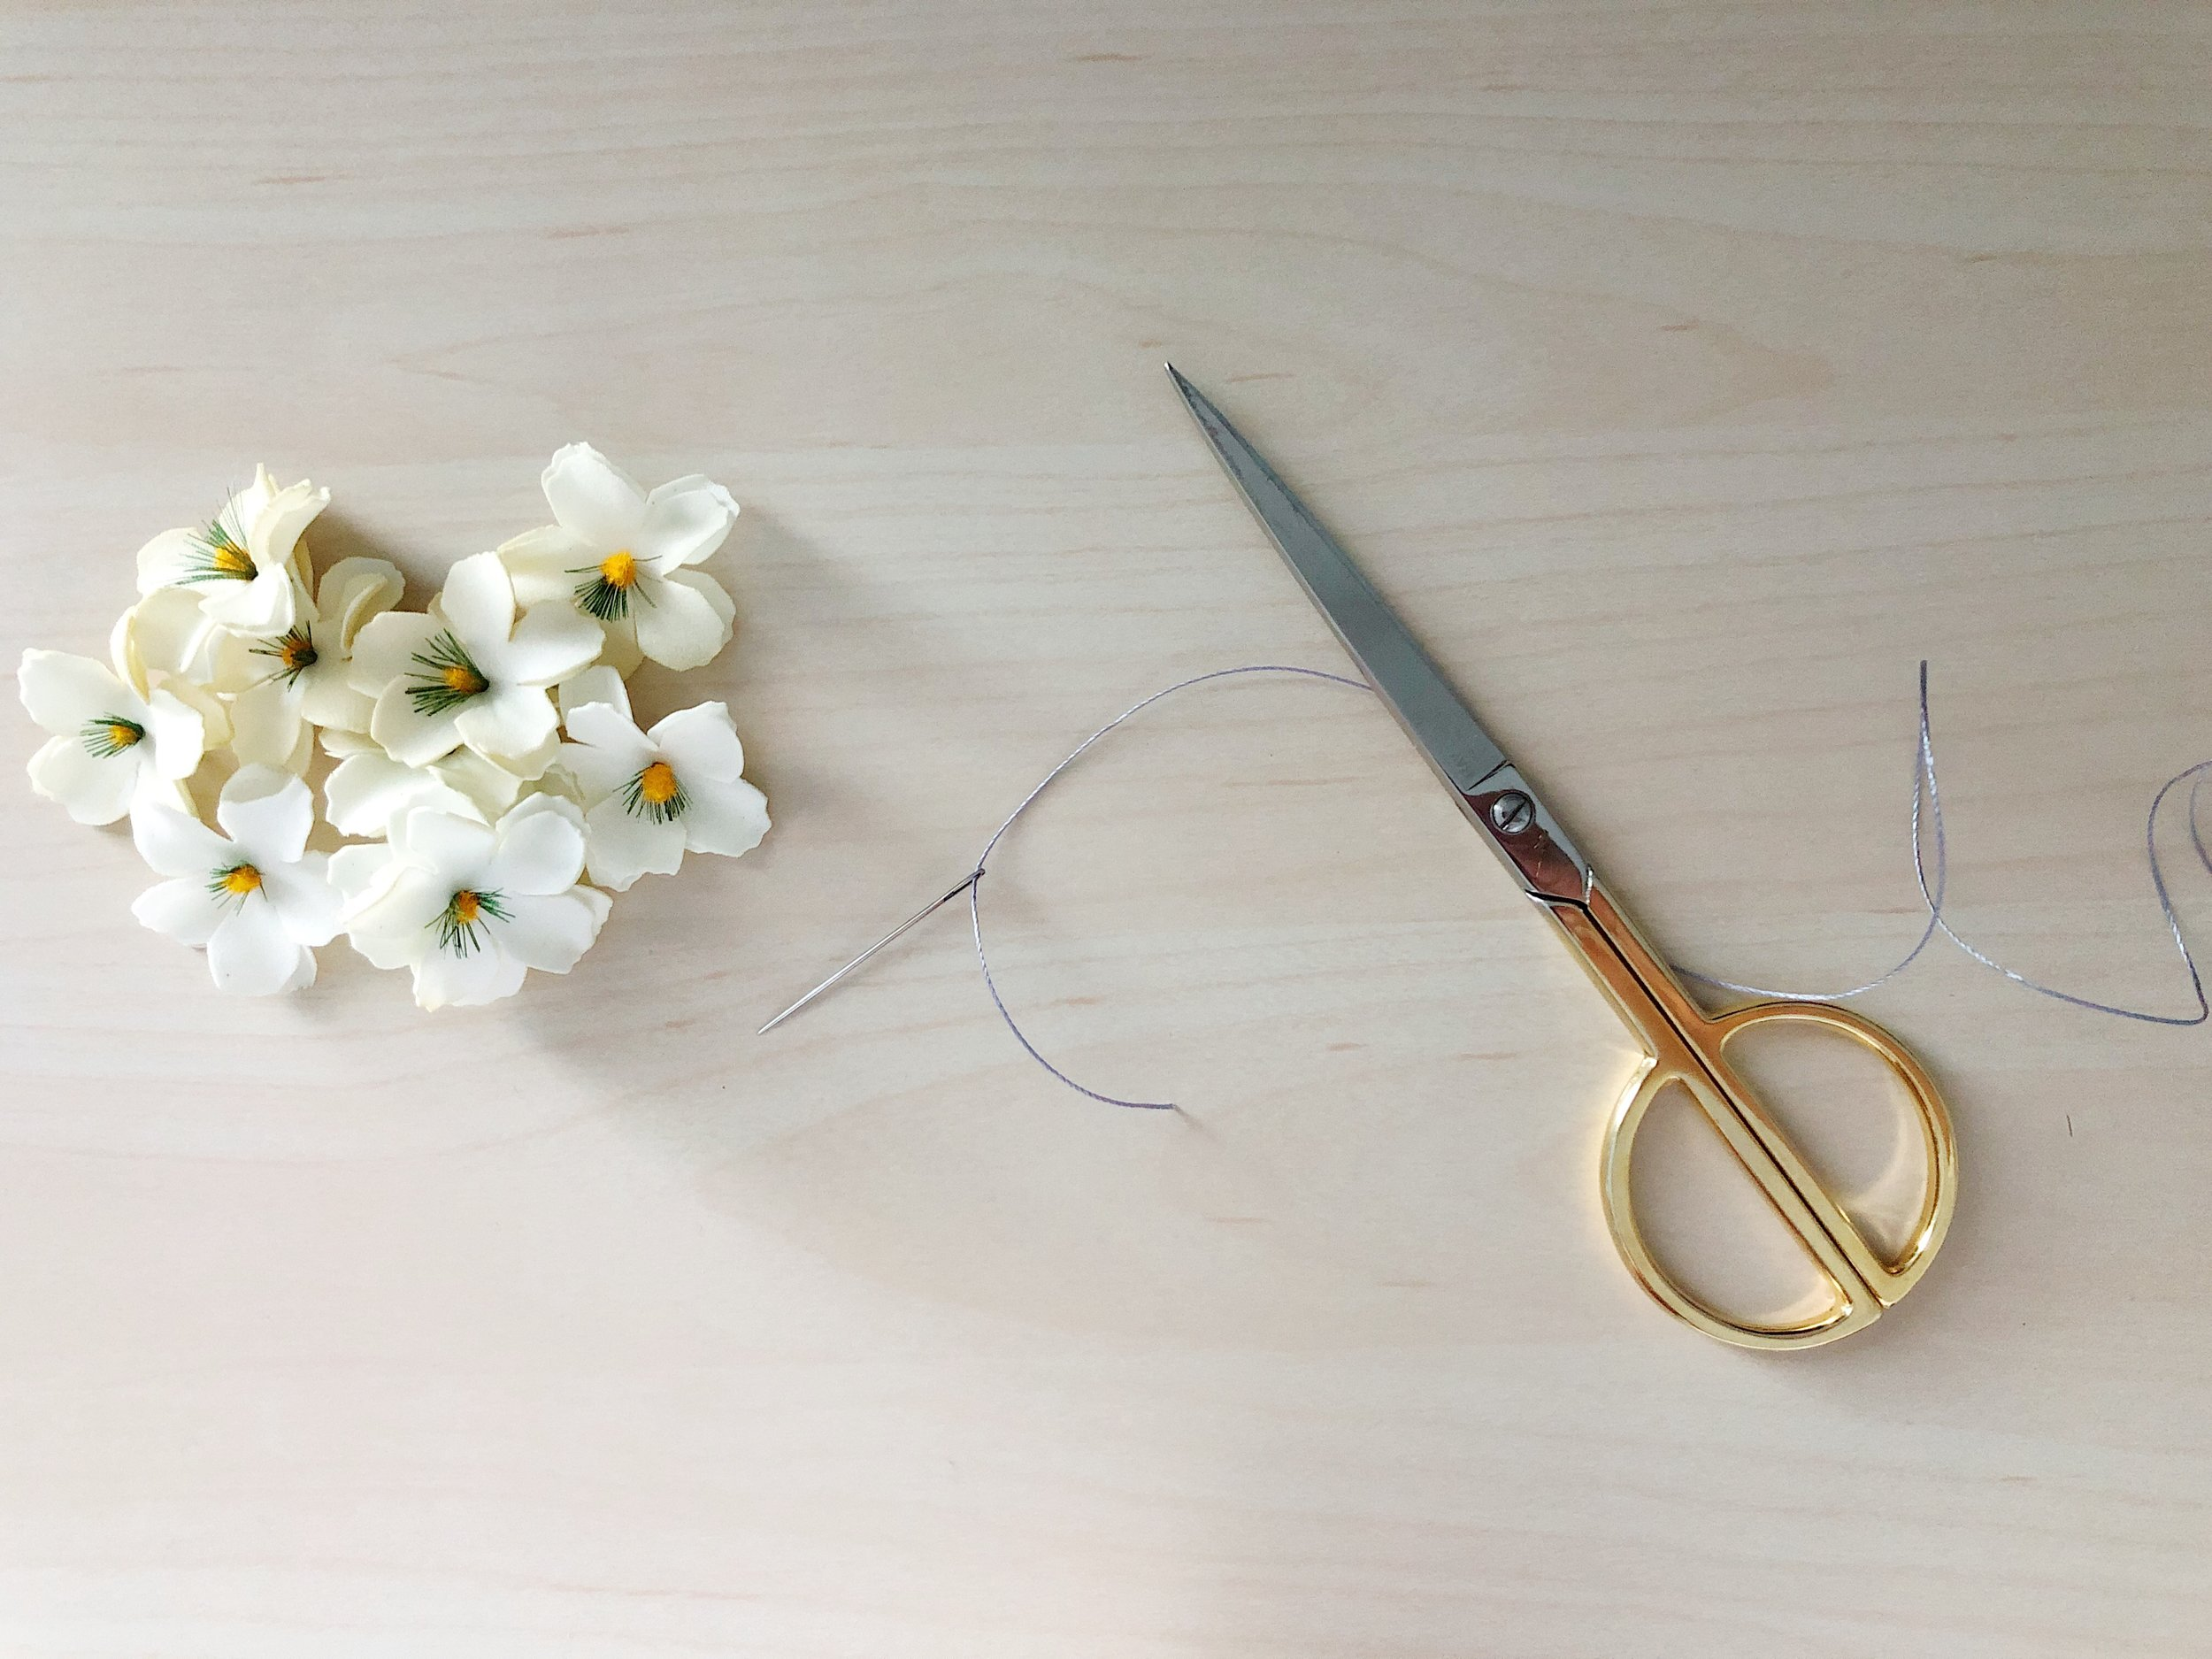 I used the same flowers to complete a single strand